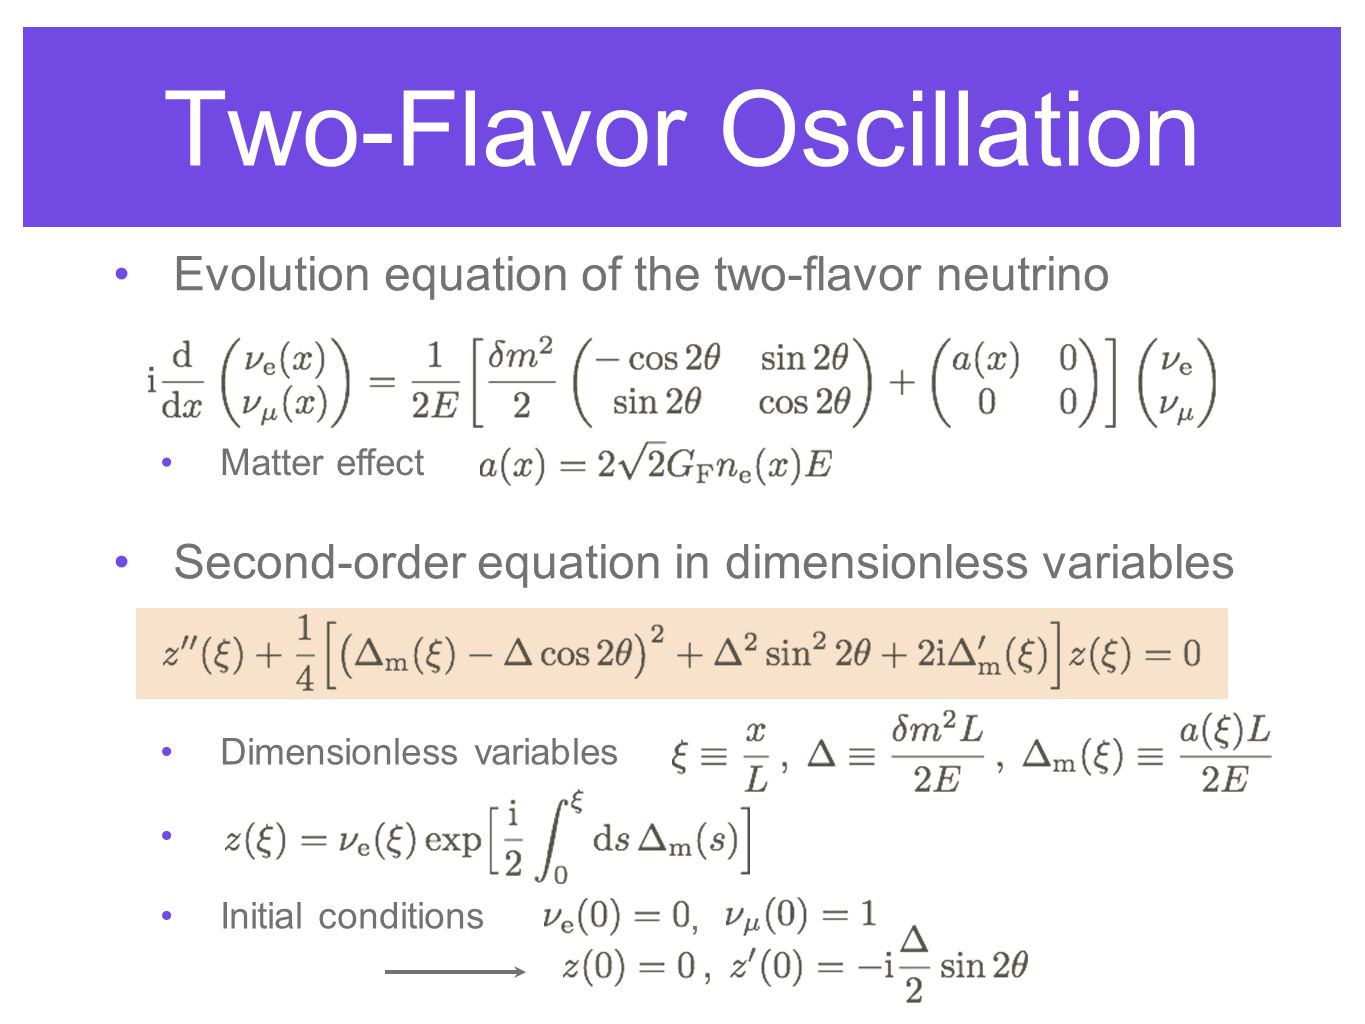 Second-order equation in dimensionless variables Dimensionless variables Initial conditions, Matter effect Evolution equation of the two-flavor neutrino